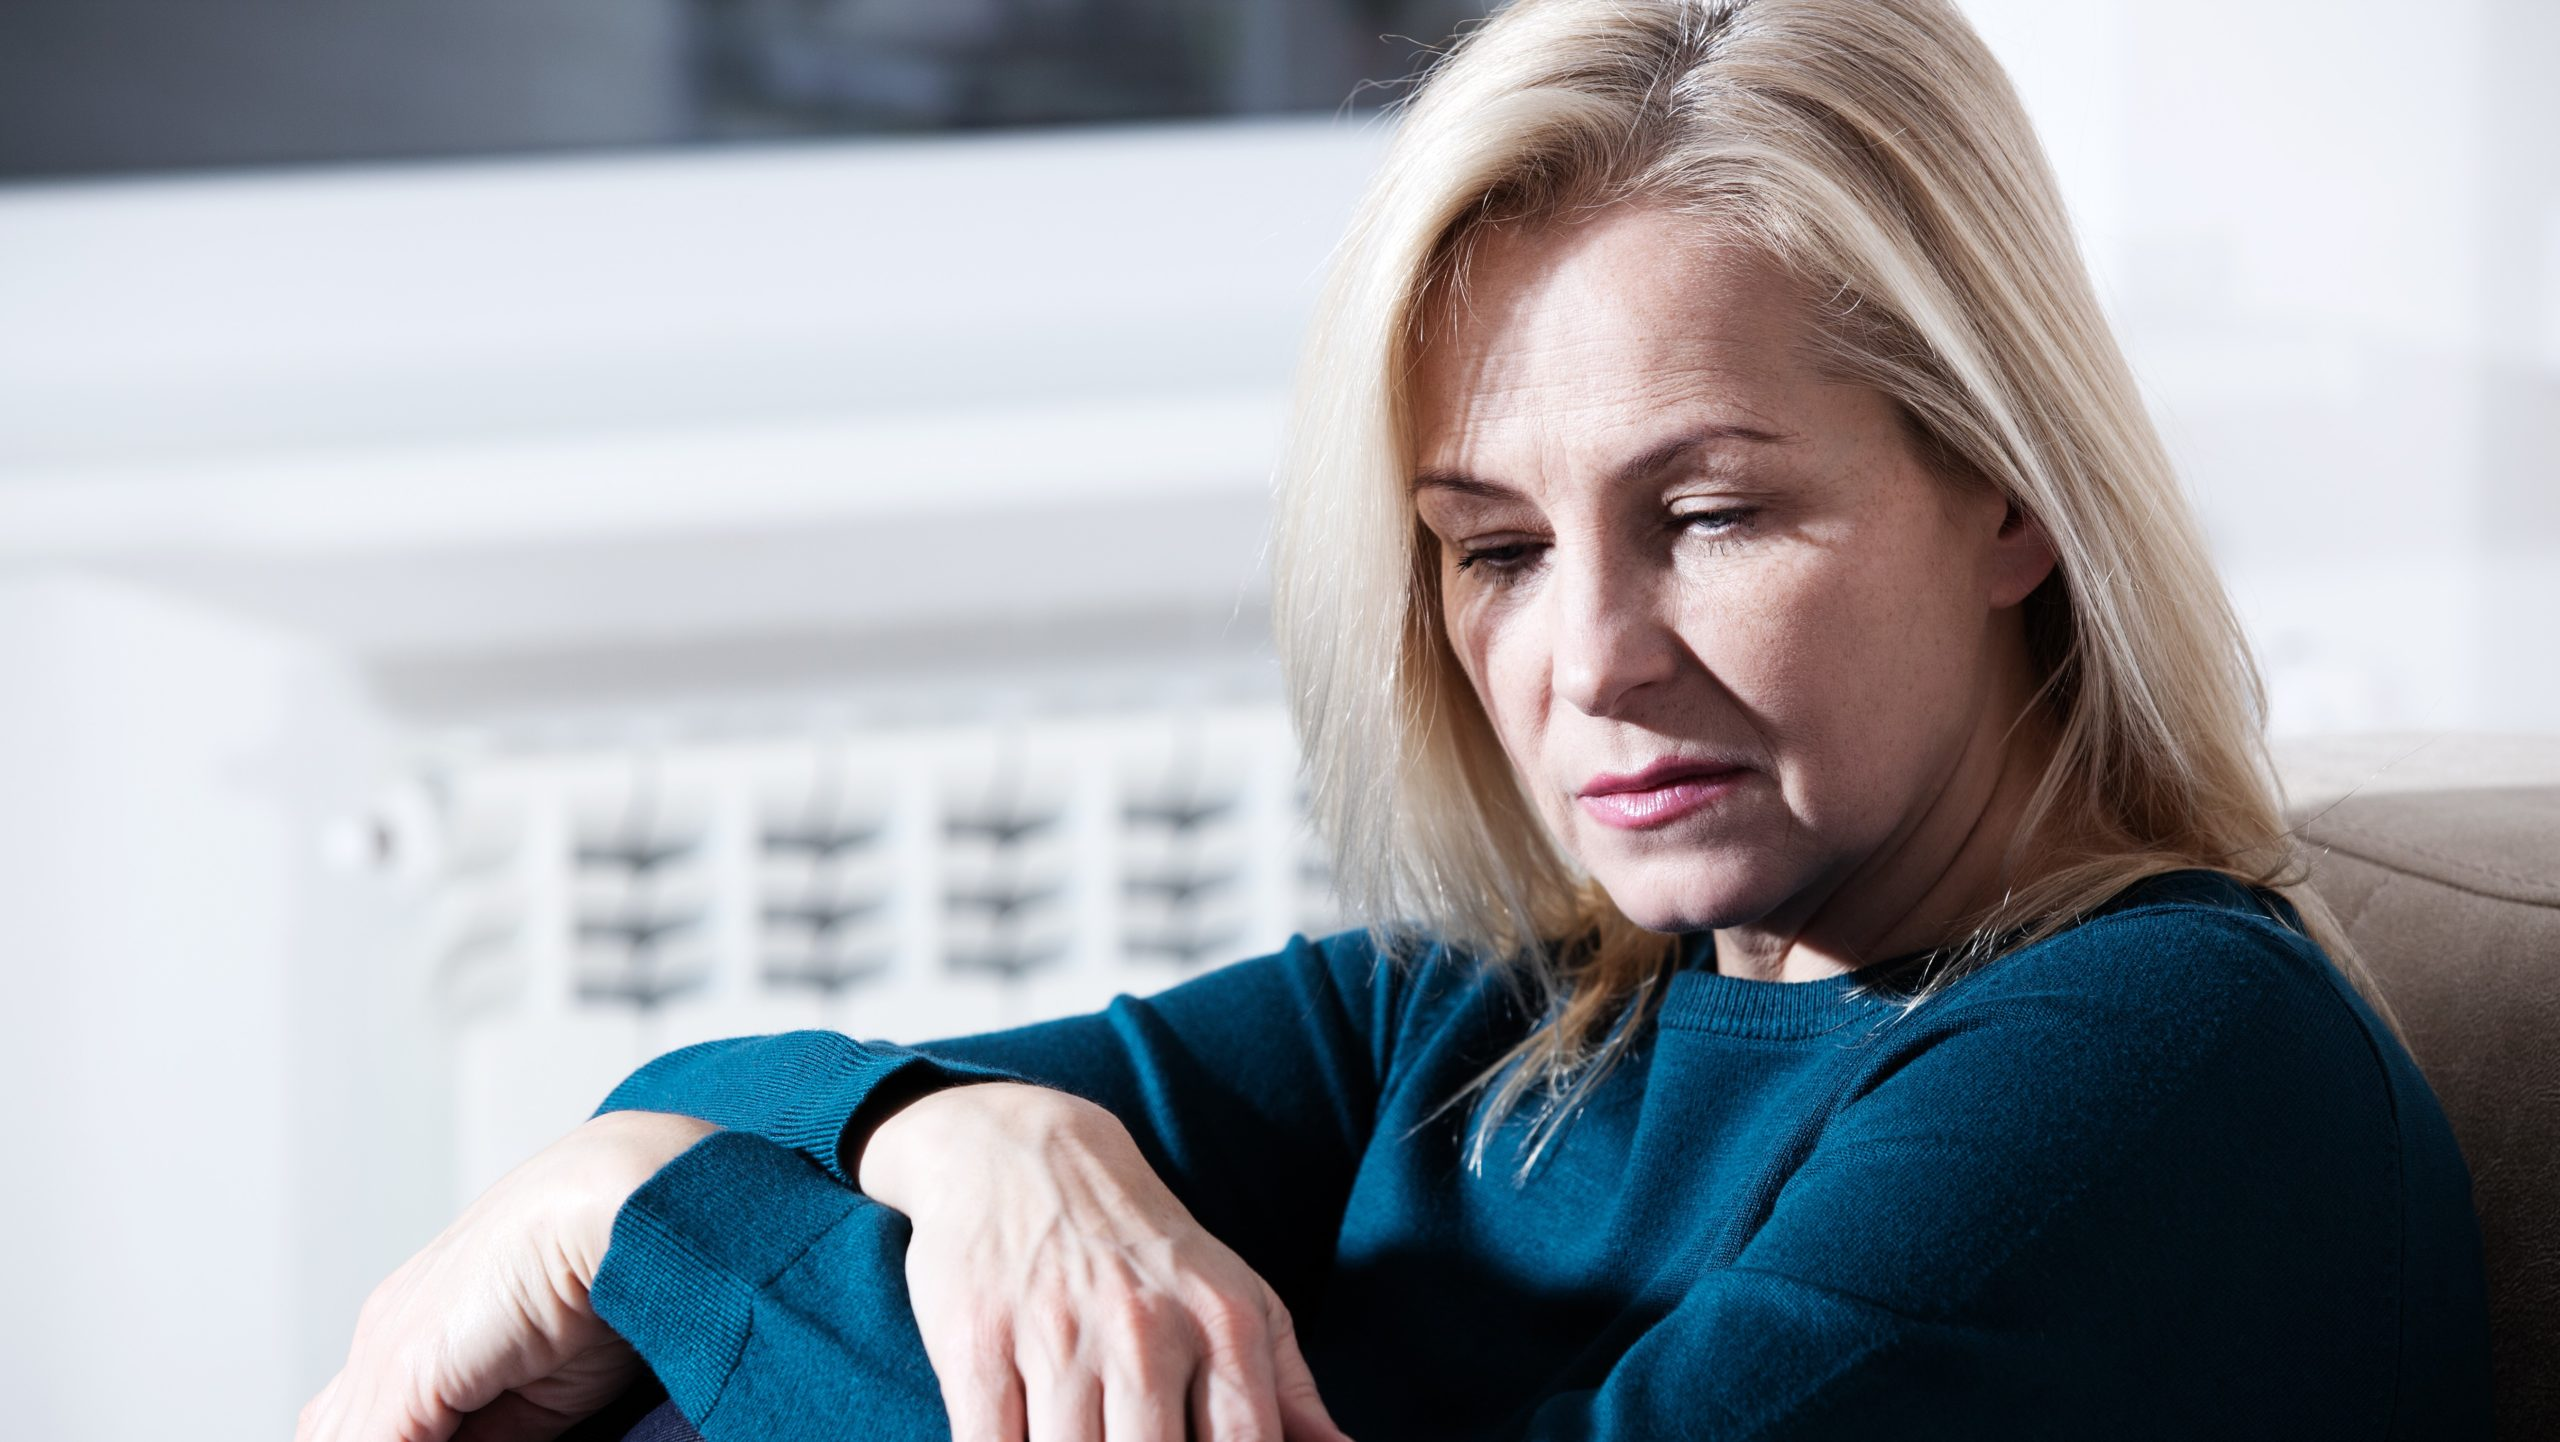 Middle aged woman barefoot sitting on the couch, hugging her head, at home. The concept of sadness and loneliness.